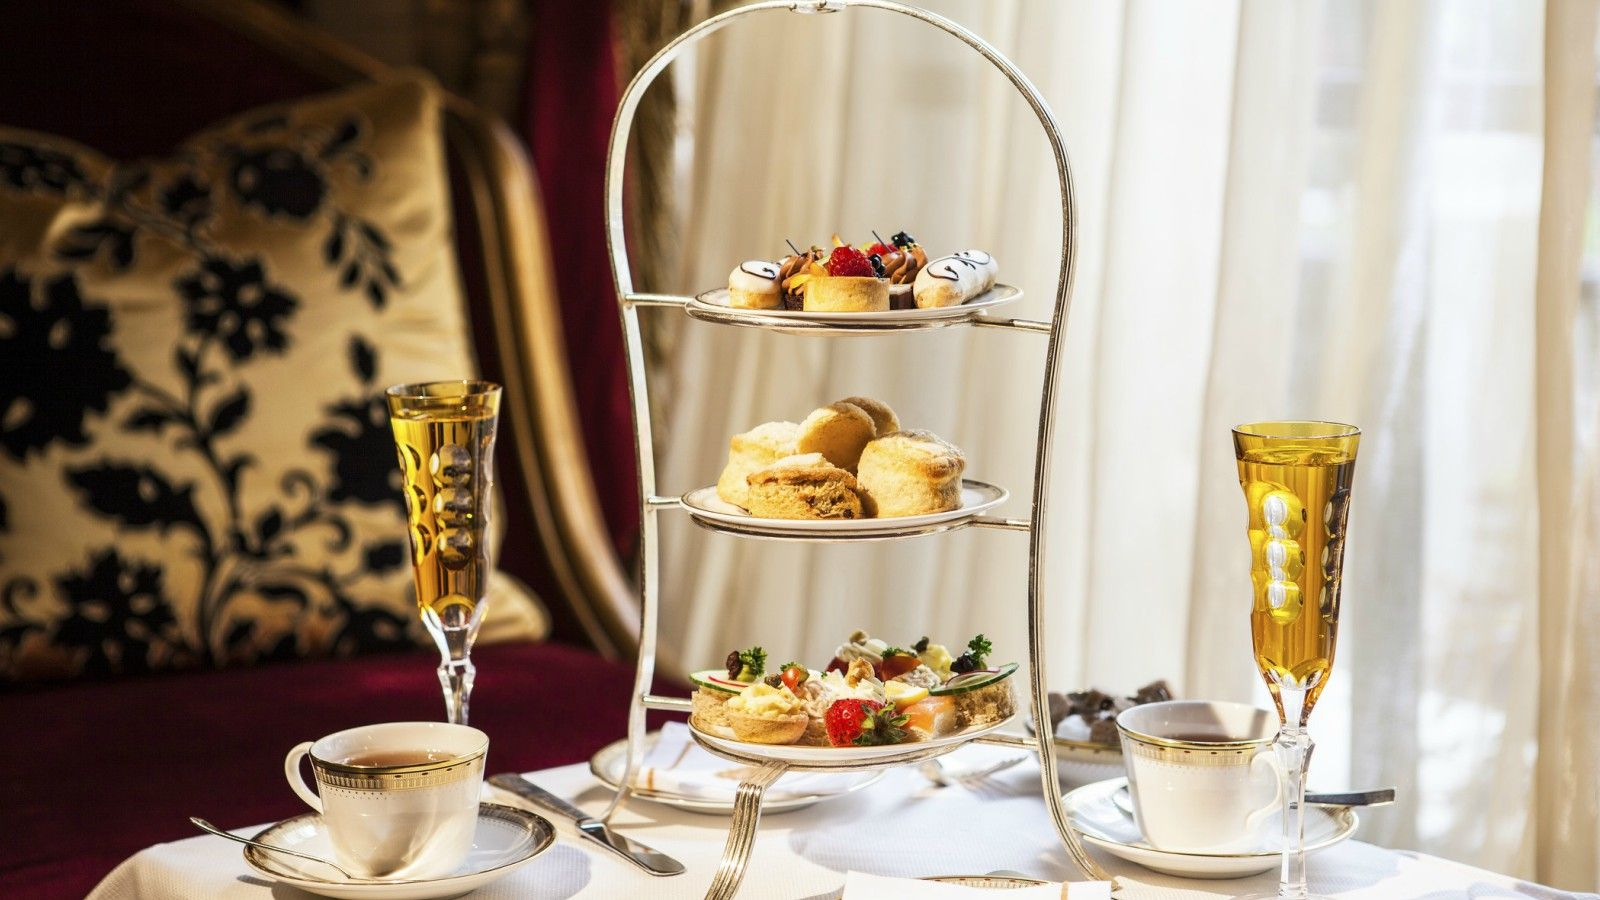 The St. Regis Washington, D.C. -  Afternoon Tea